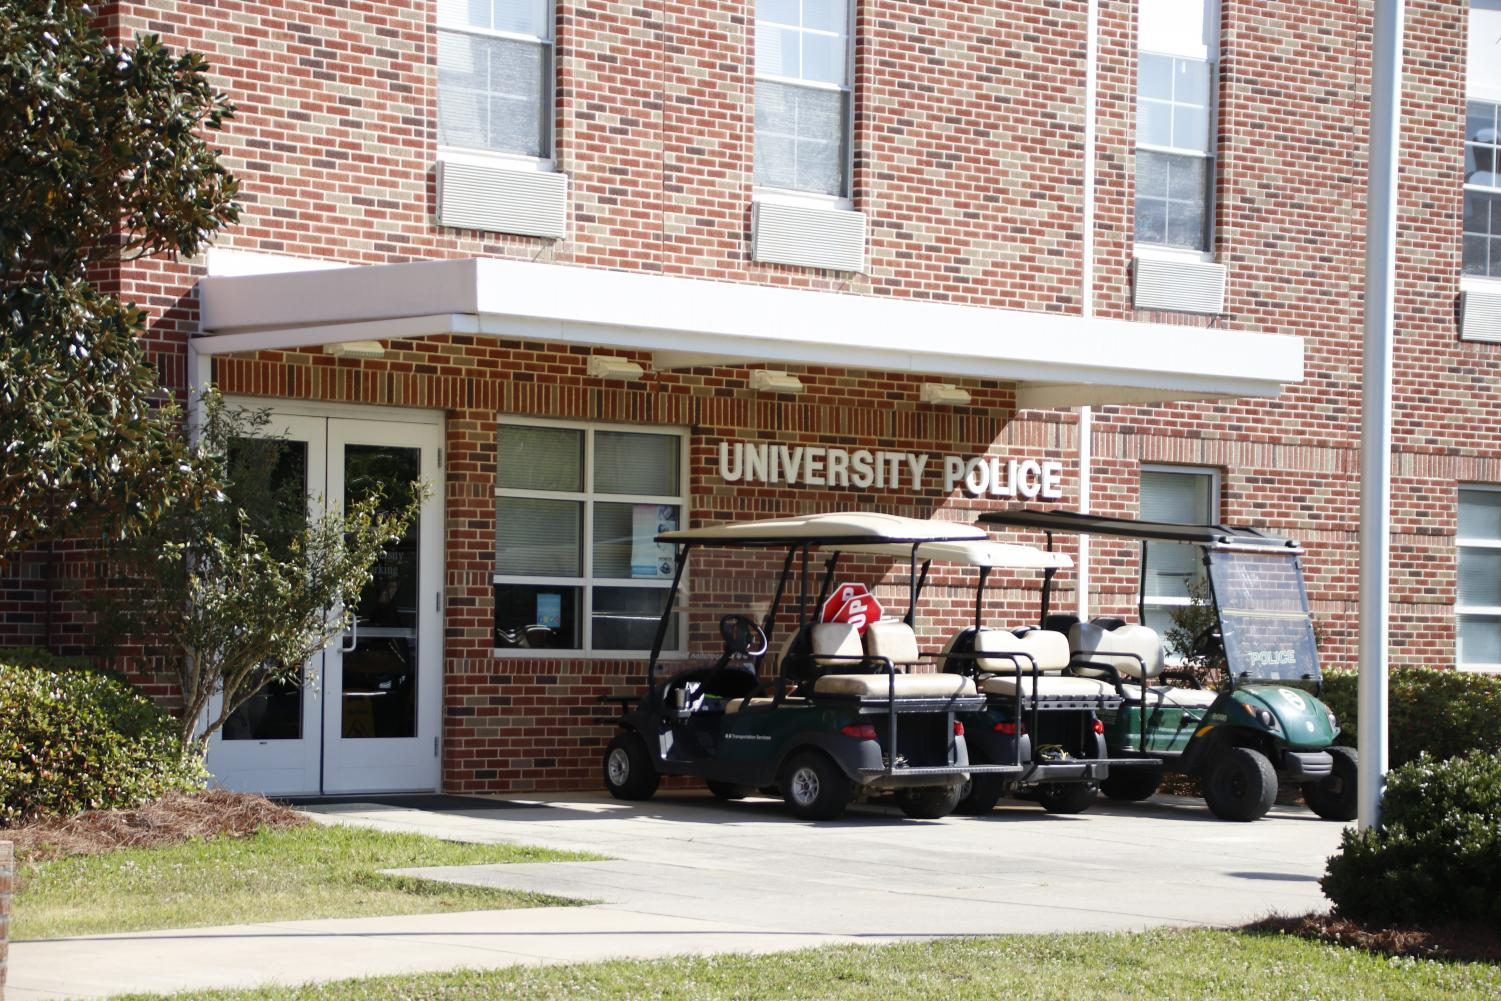 Located in Pride Hall, the University Police Department's centralized placement not only helps in responding to emergency situations, but it also allows the department to be prominent among the student body.